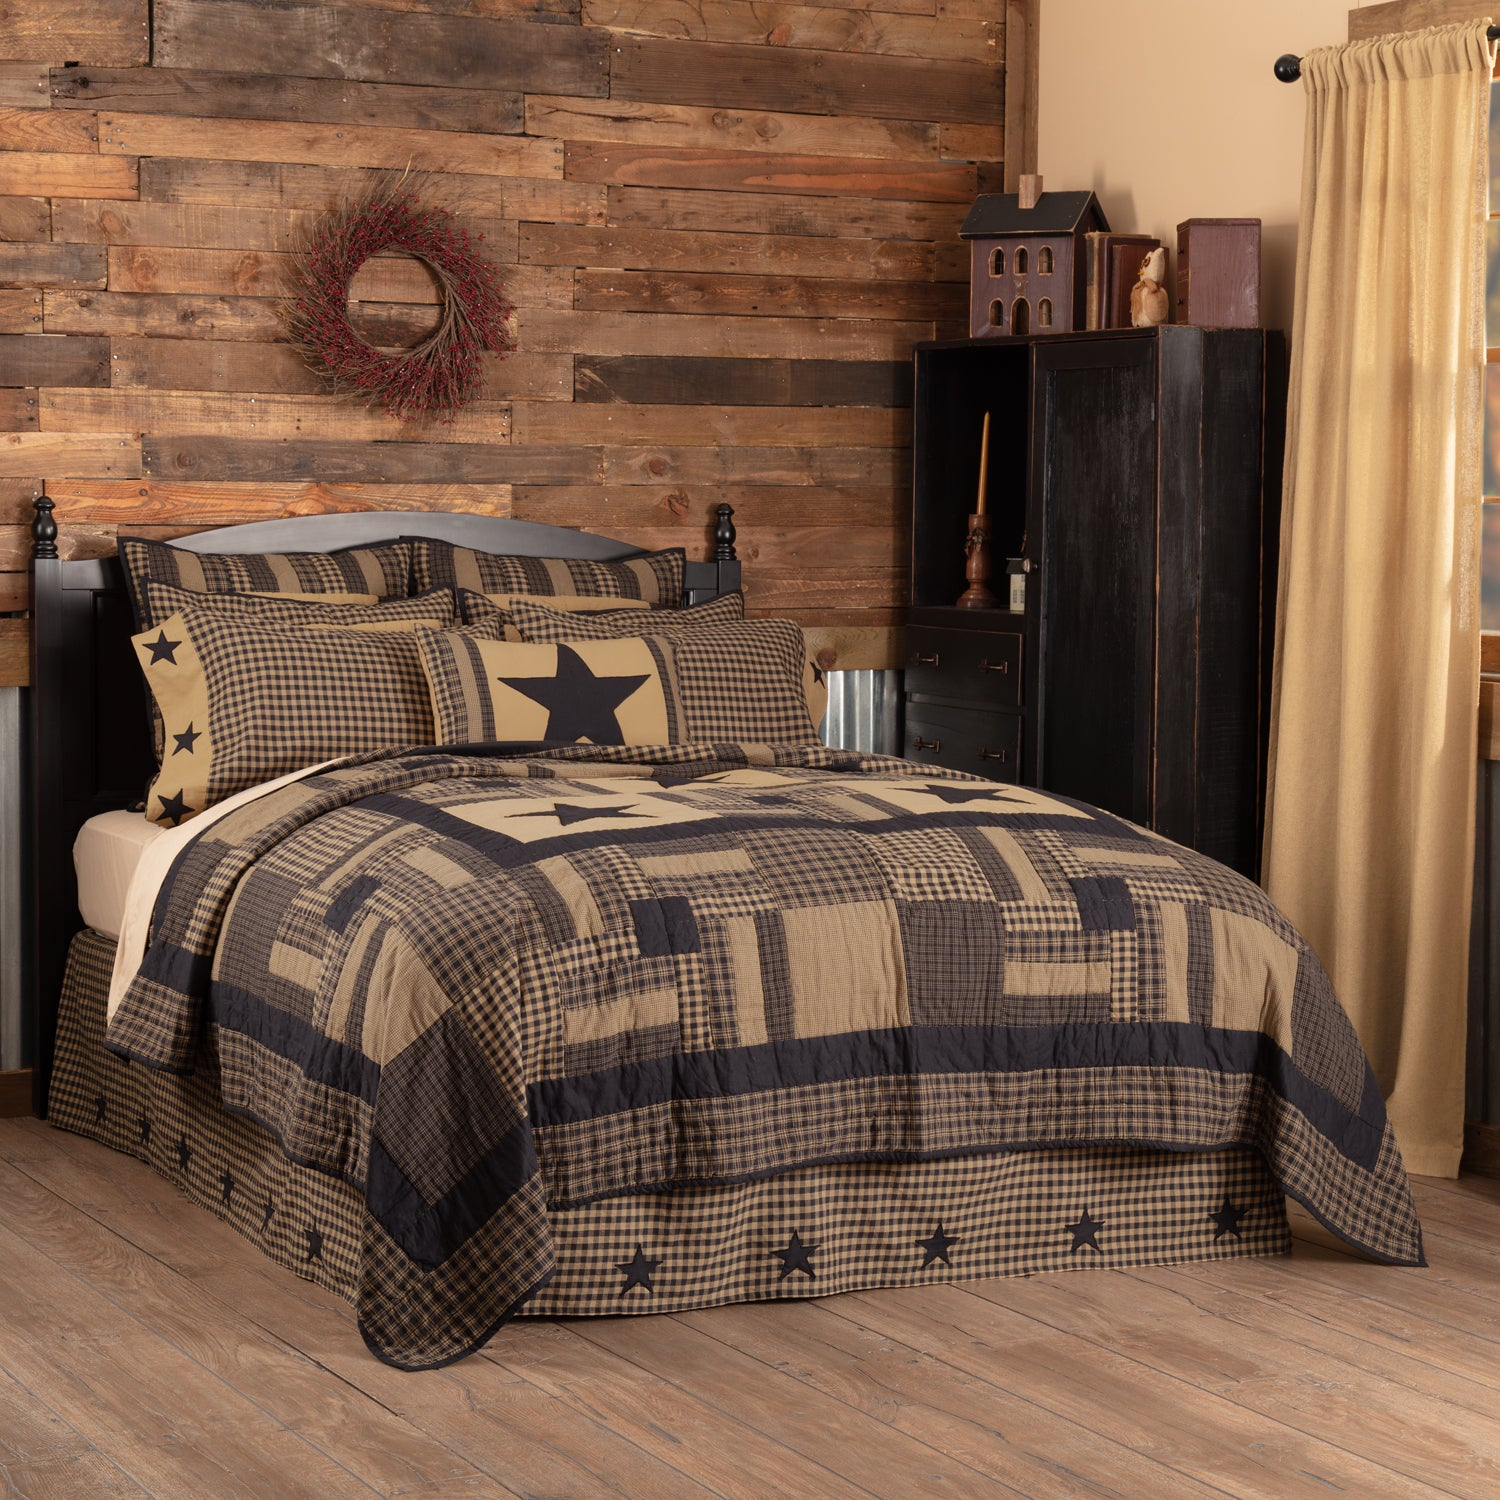 Black Check Star California King Quilt 130Wx115L - Woodrol